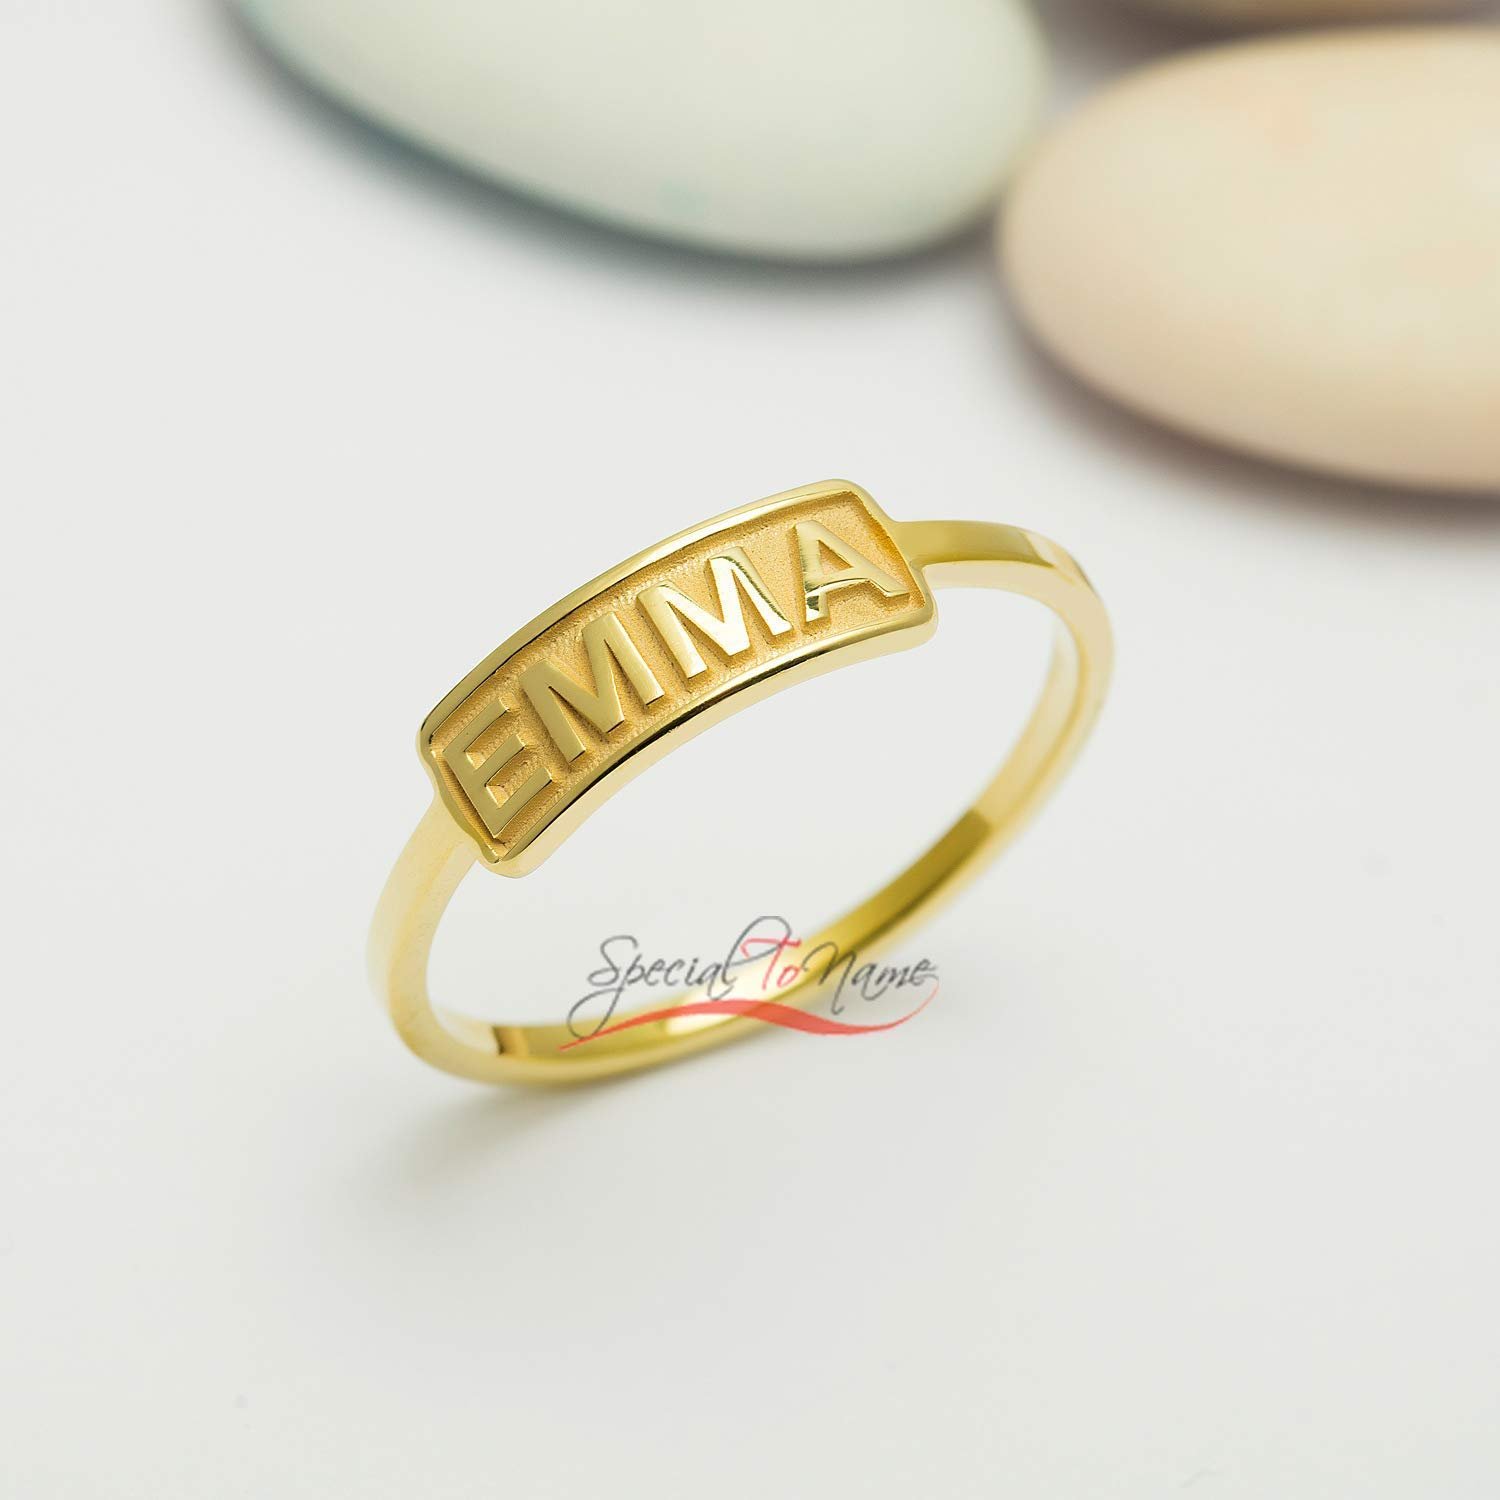 Grandma Gifts Custom Name Ring Personalized Gift for Her Gold Name Jewelry Silver Name Ring 1 Gift for Mom Christmas Gift